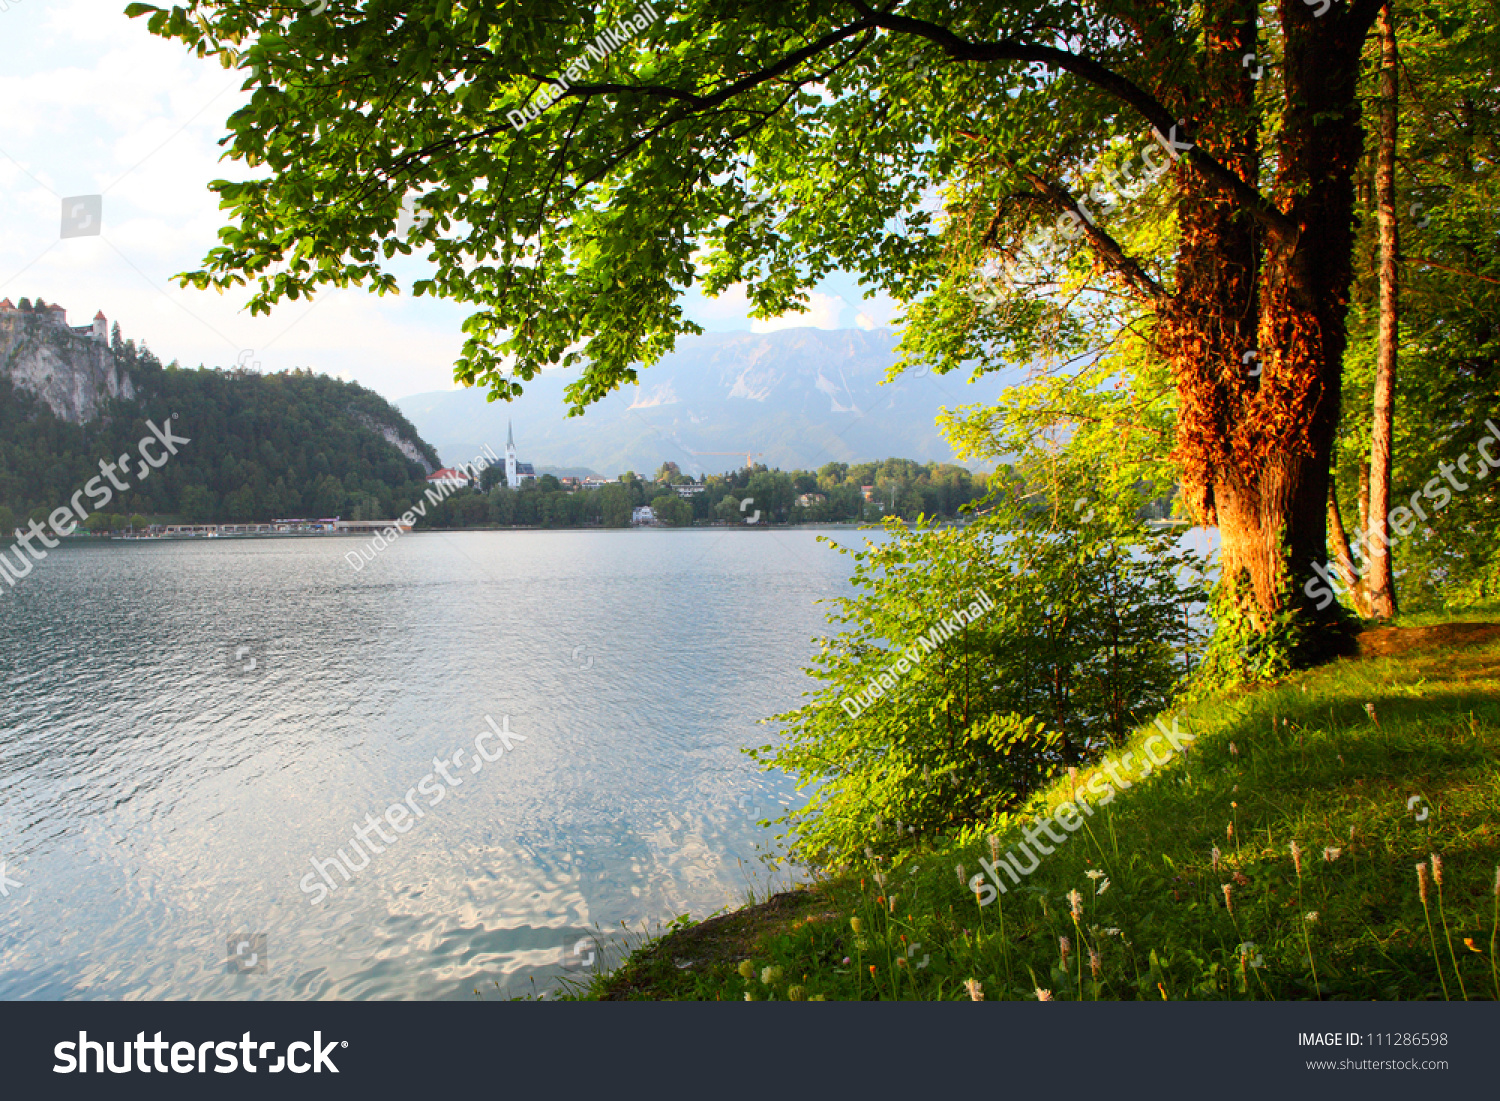 Green Lush Tree On A Pond 39 S Coast At Sunset Stock Photo 111286598 Shutterstock